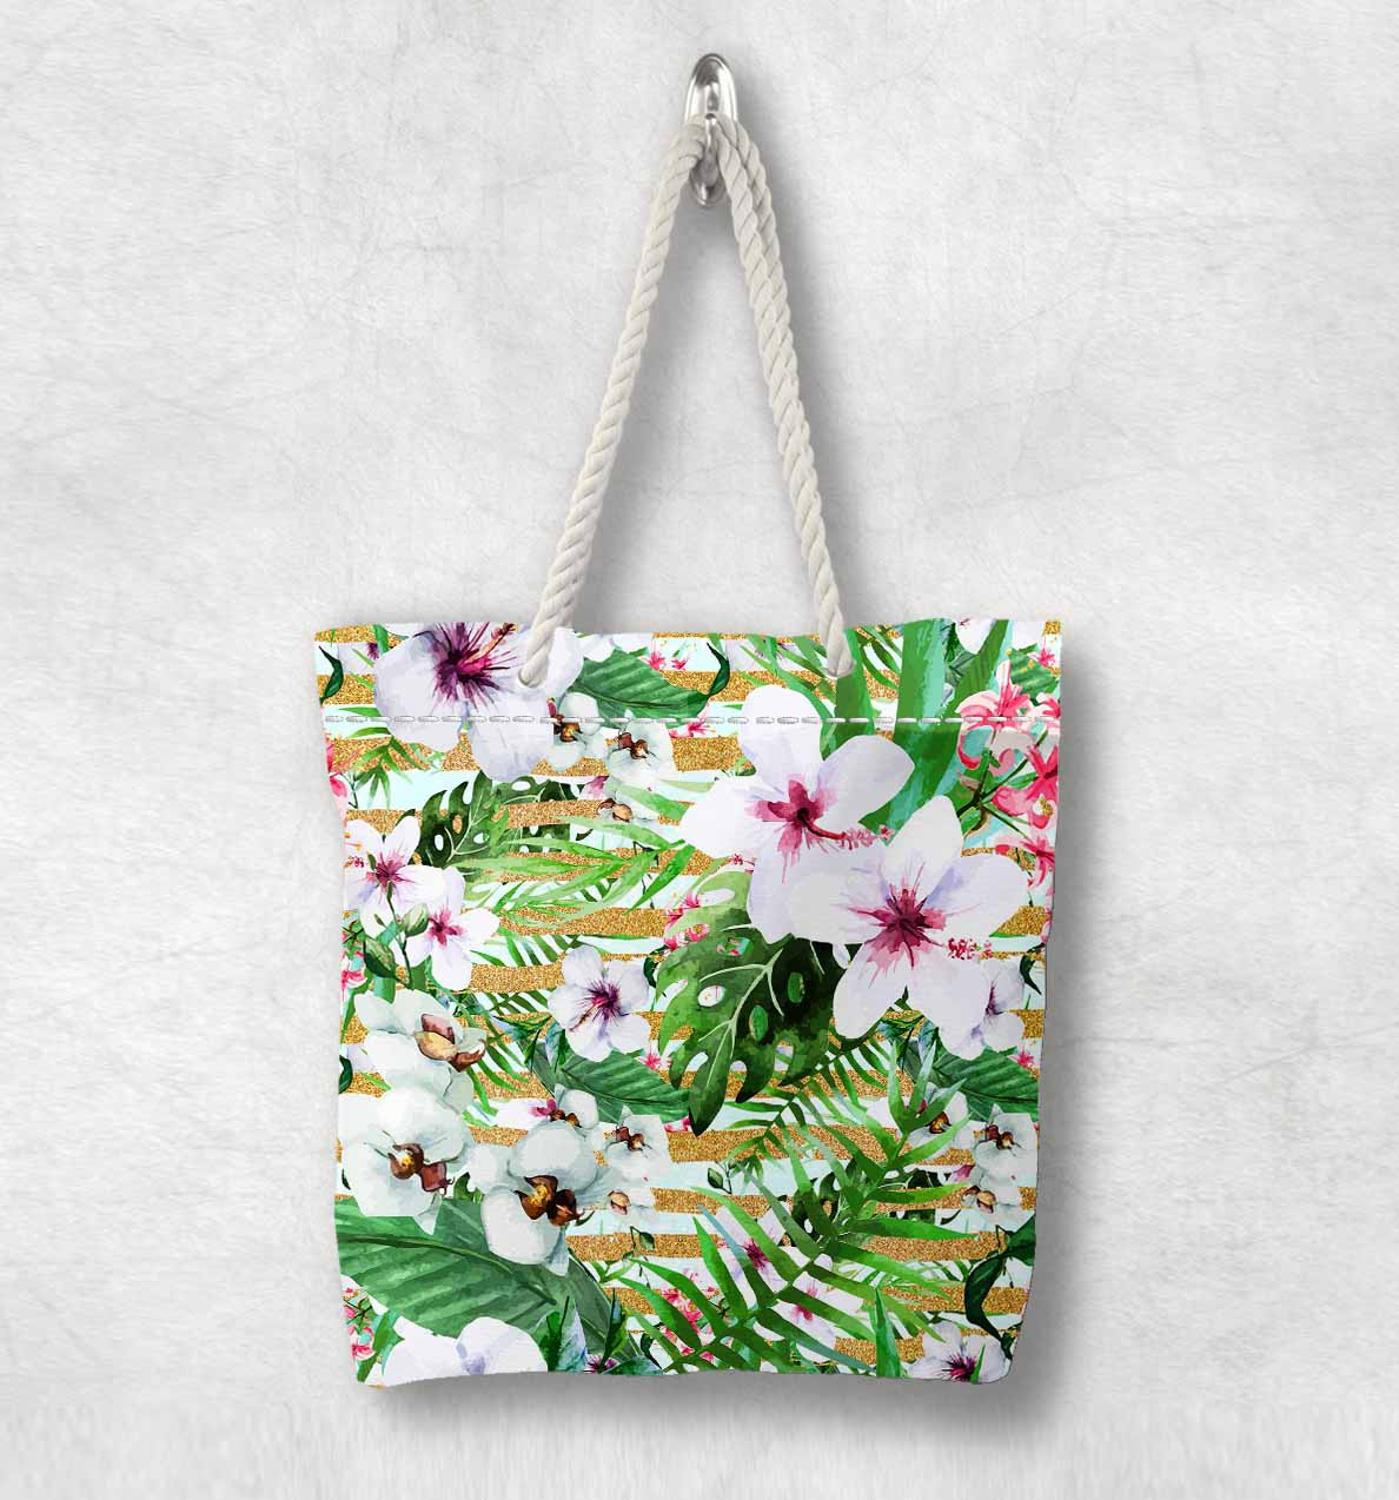 Else Tropical Green Leaves Purple White Flower Fashion White Rope Handle Canvas Bag Cotton Canvas Zippered Tote Bag Shoulder Bag